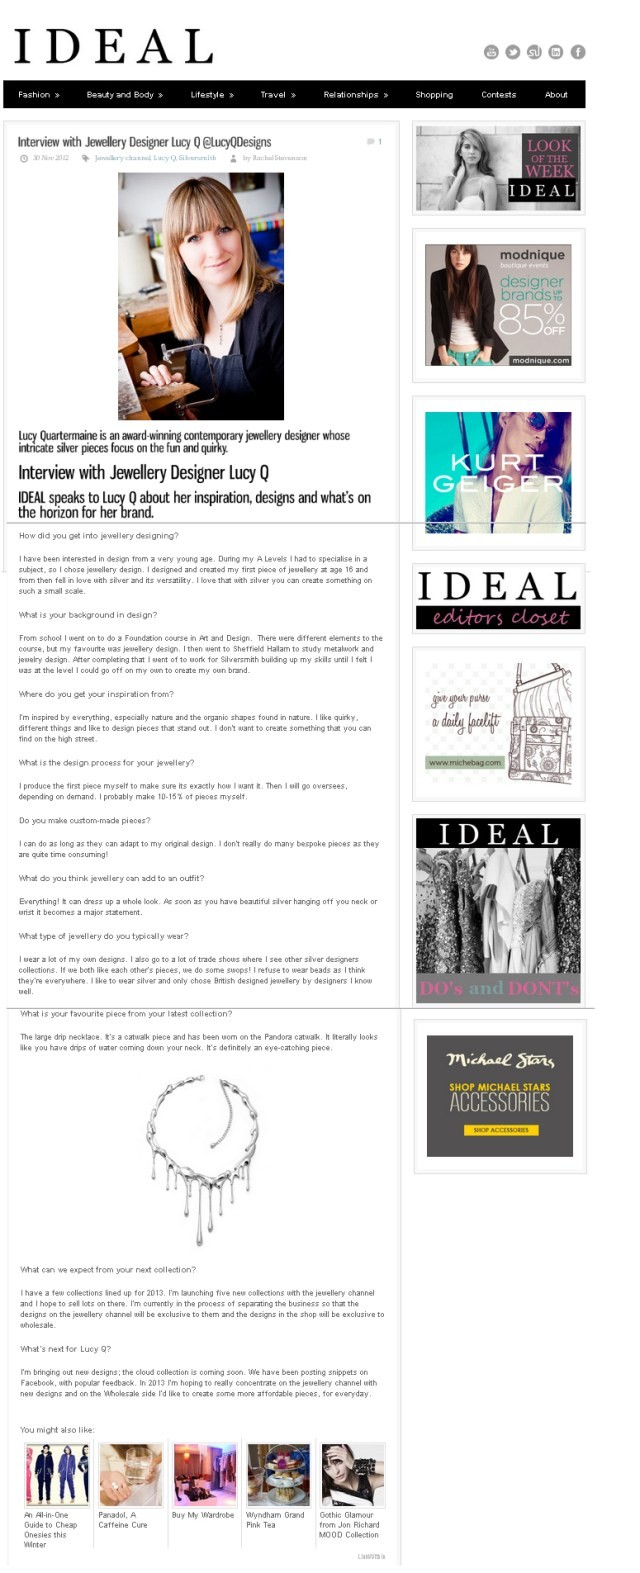 idealmagazine.co.uk